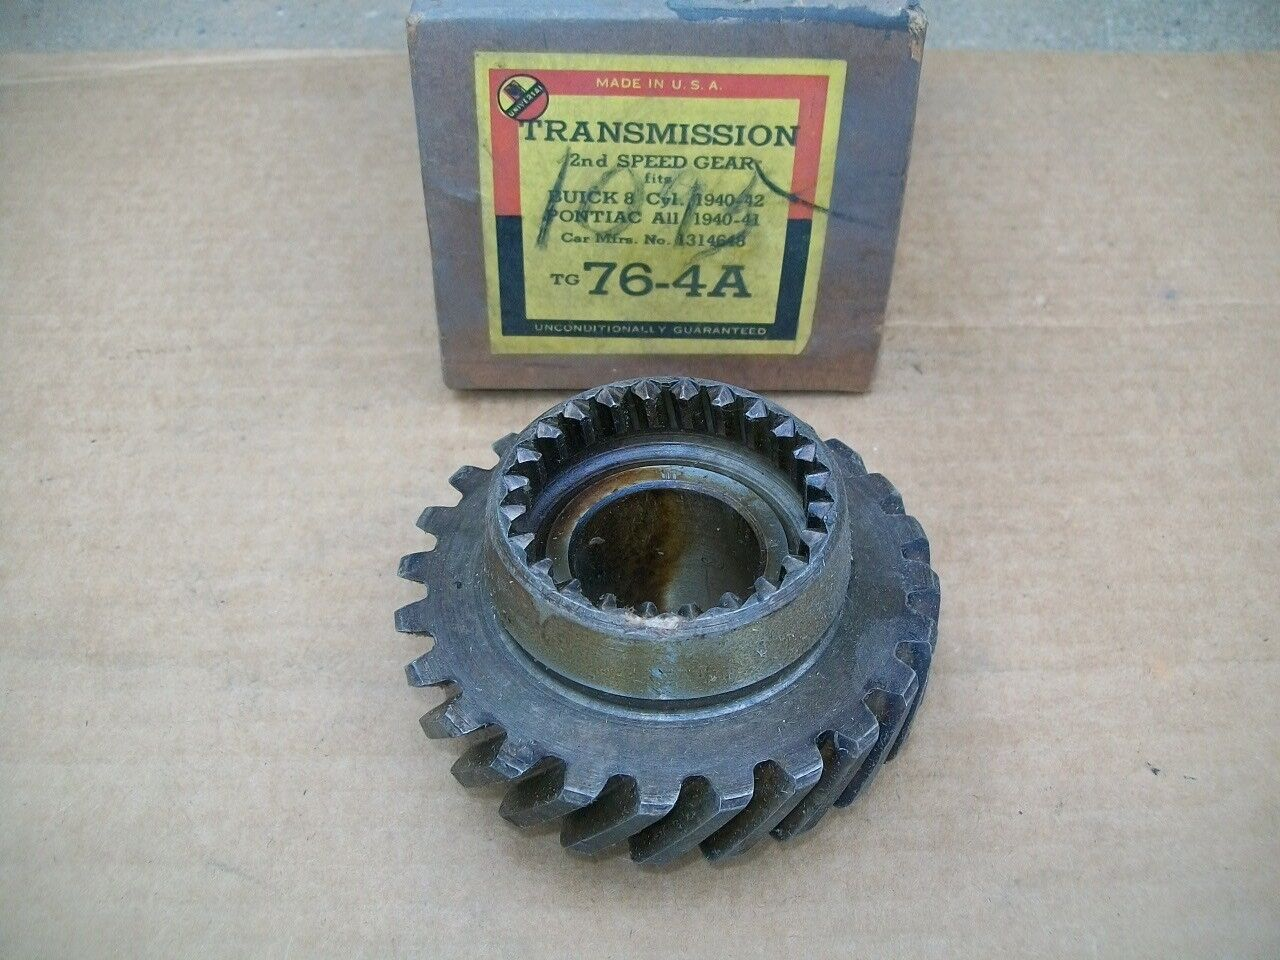 1940 41 42 46 47 48 49 50 51 52 53 54 Buick Pontiac Olds NORS 2nd SPEED GEAR